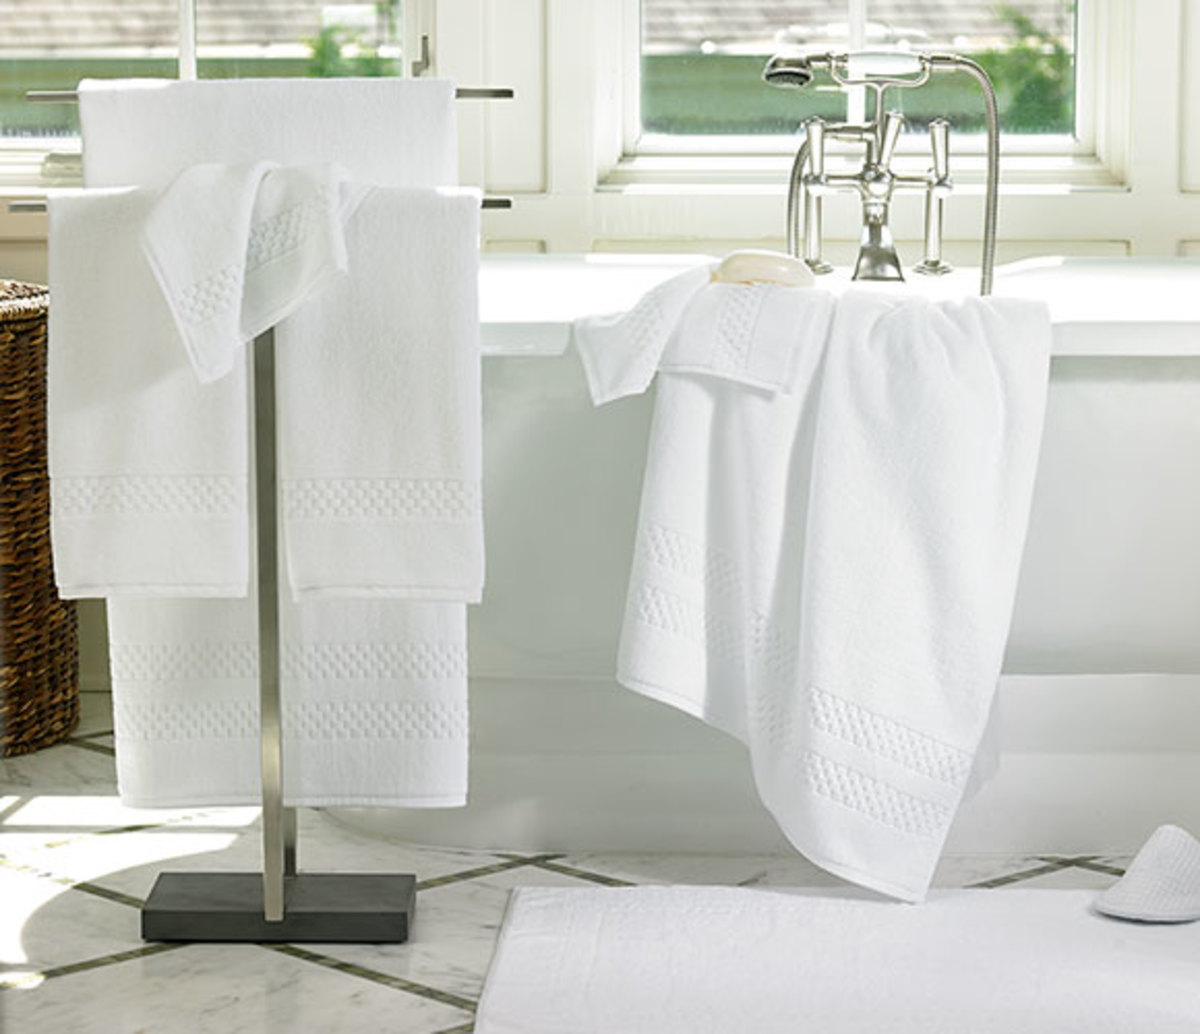 Soft, white towels give your bathroom that spa resort feel.